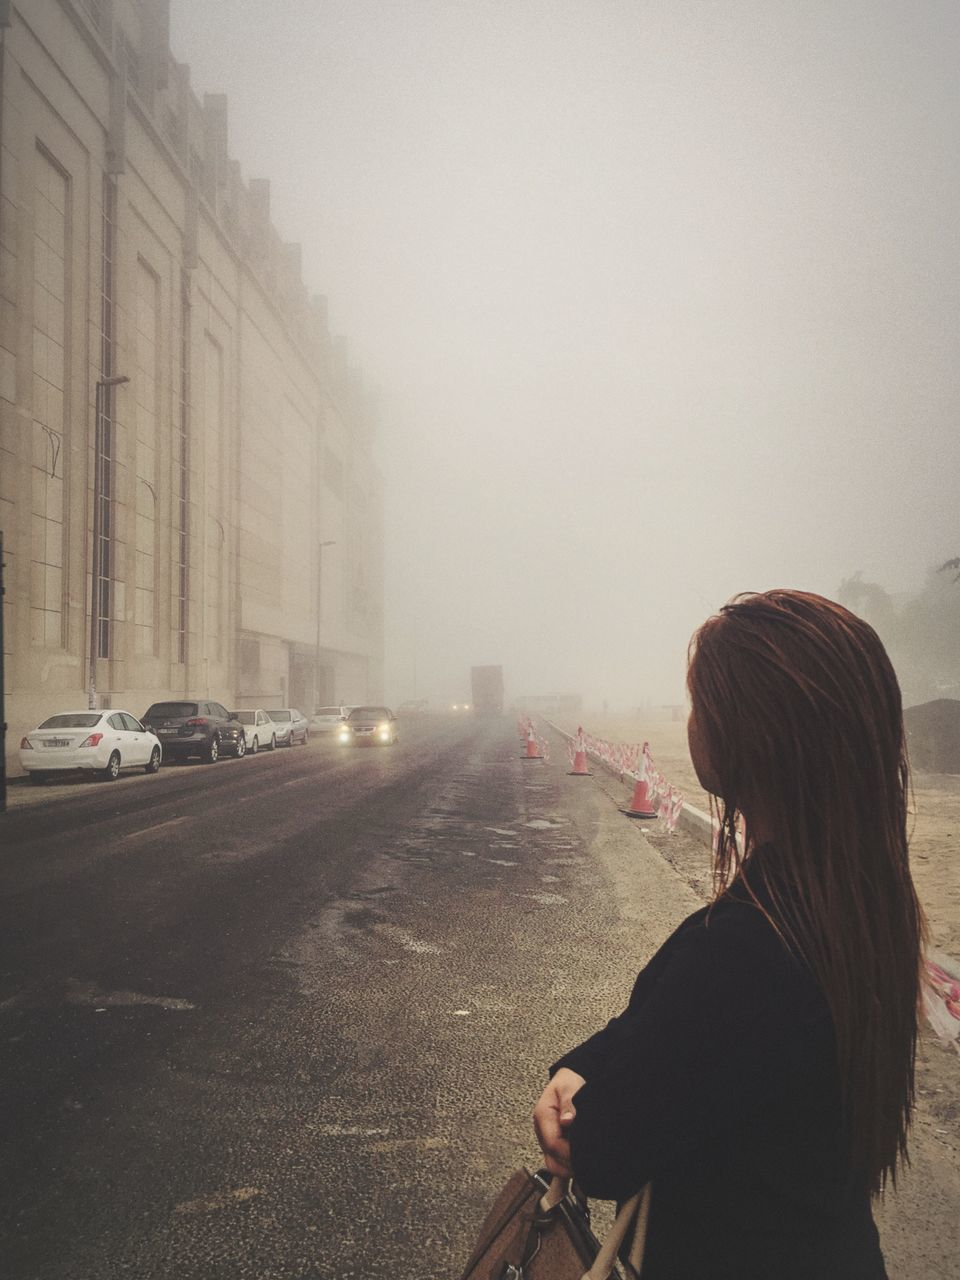 rear view, real people, car, architecture, land vehicle, transportation, one person, built structure, women, lifestyles, road, building exterior, leisure activity, outdoors, fog, day, city, sky, people